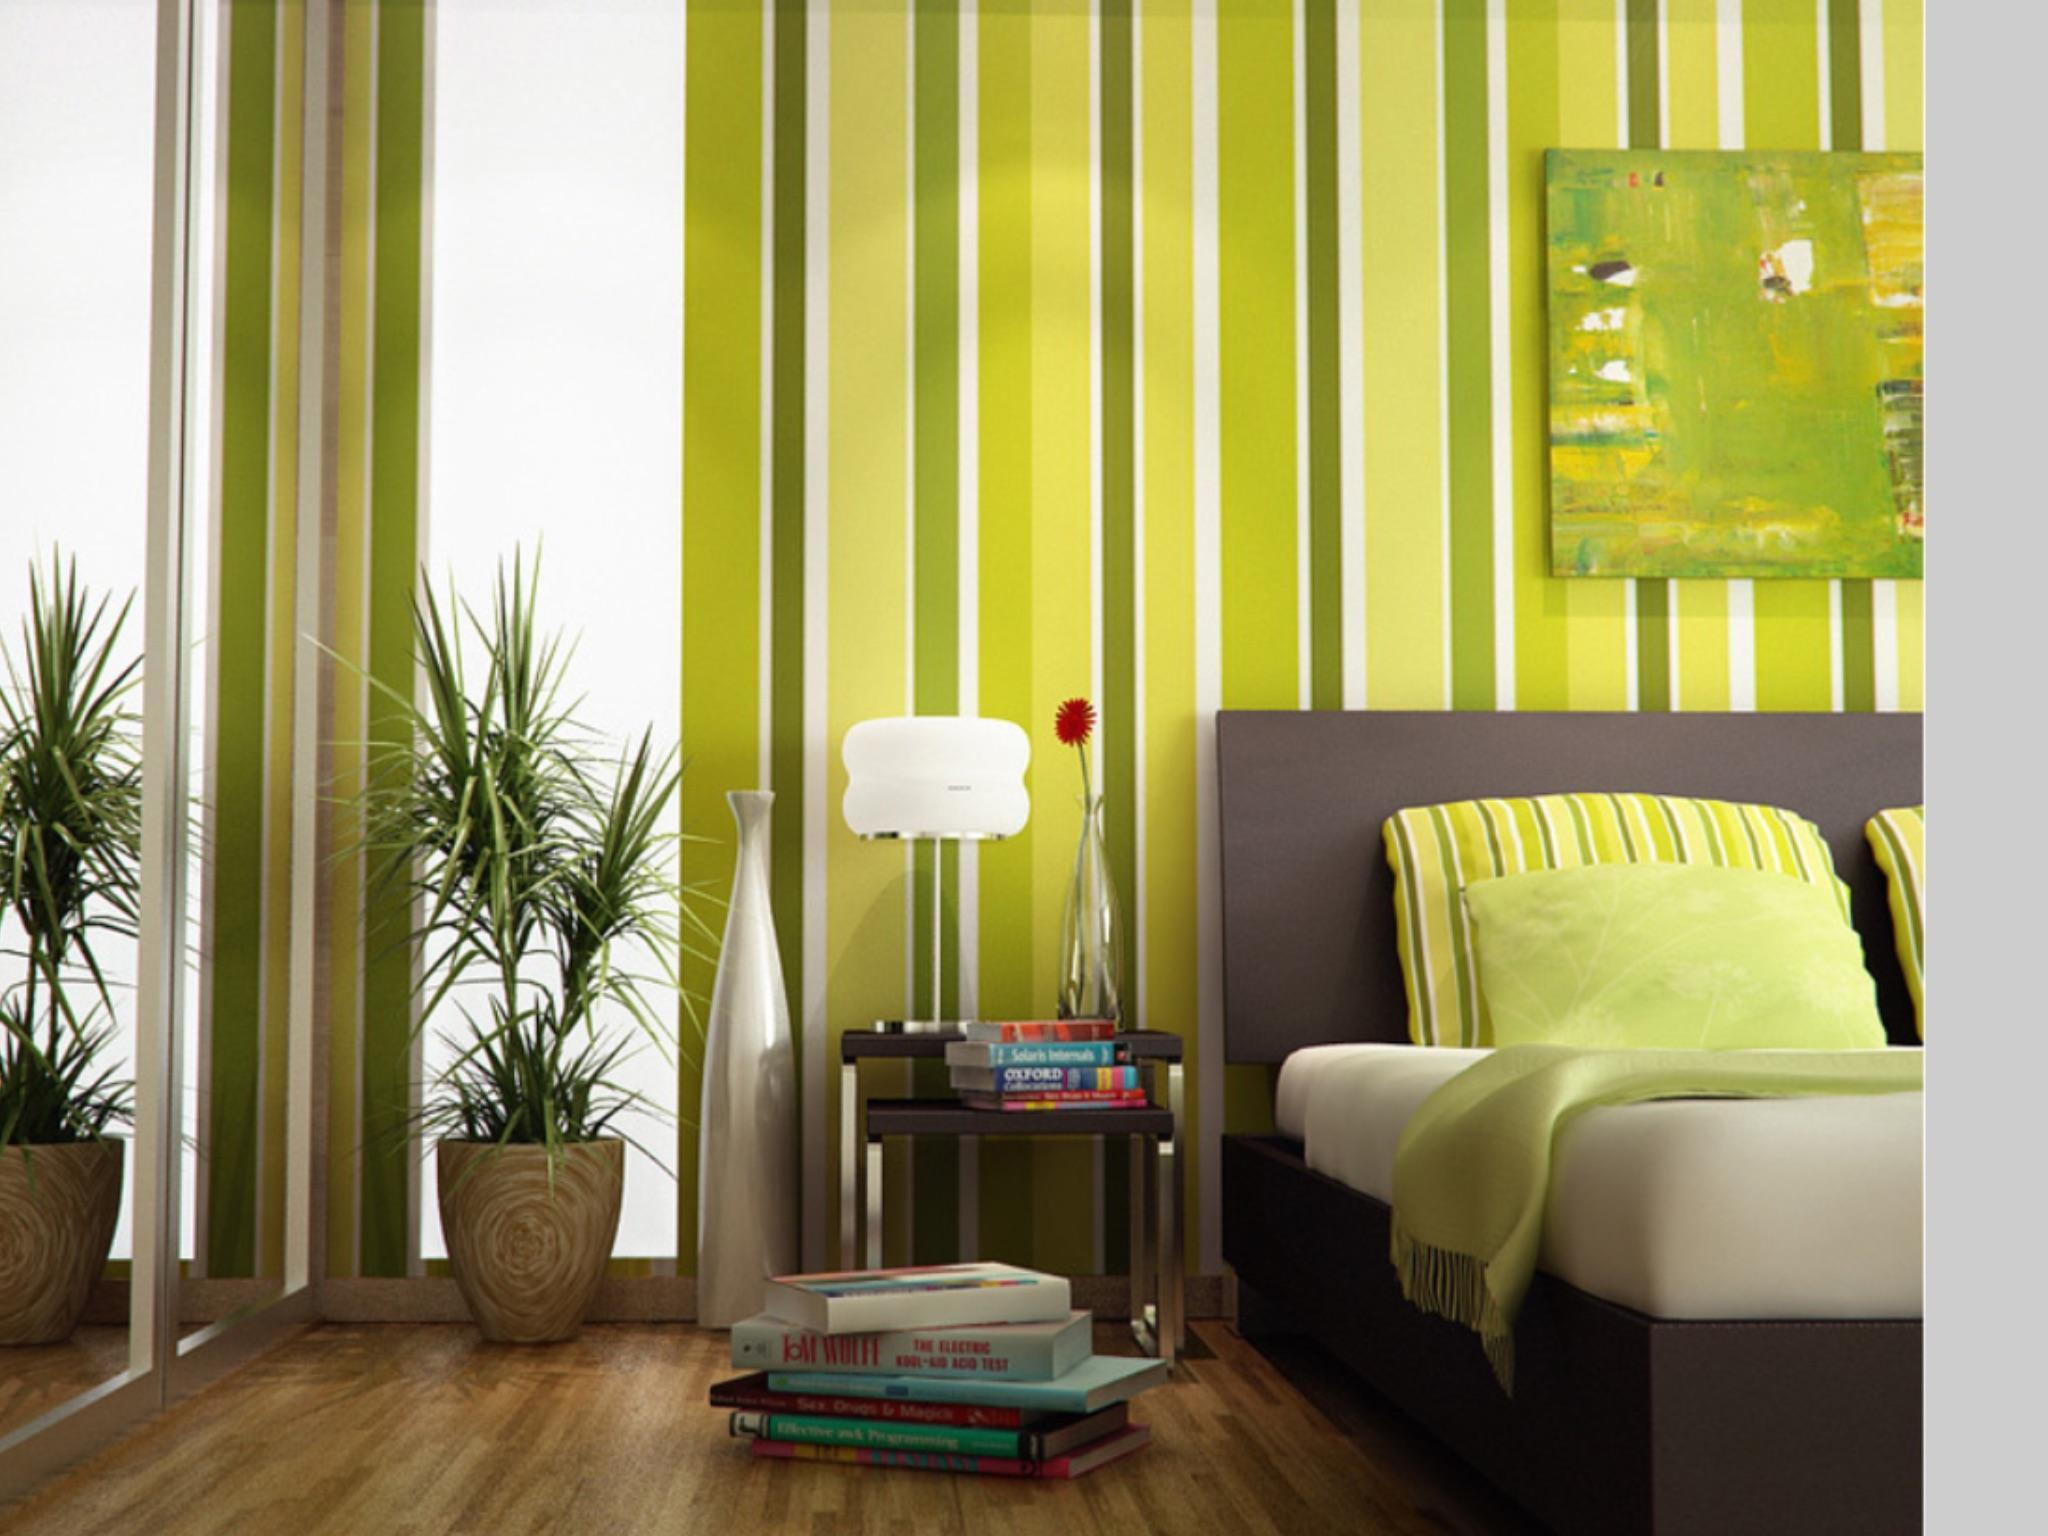 What color would  your bedroom be if you could paint it any color?